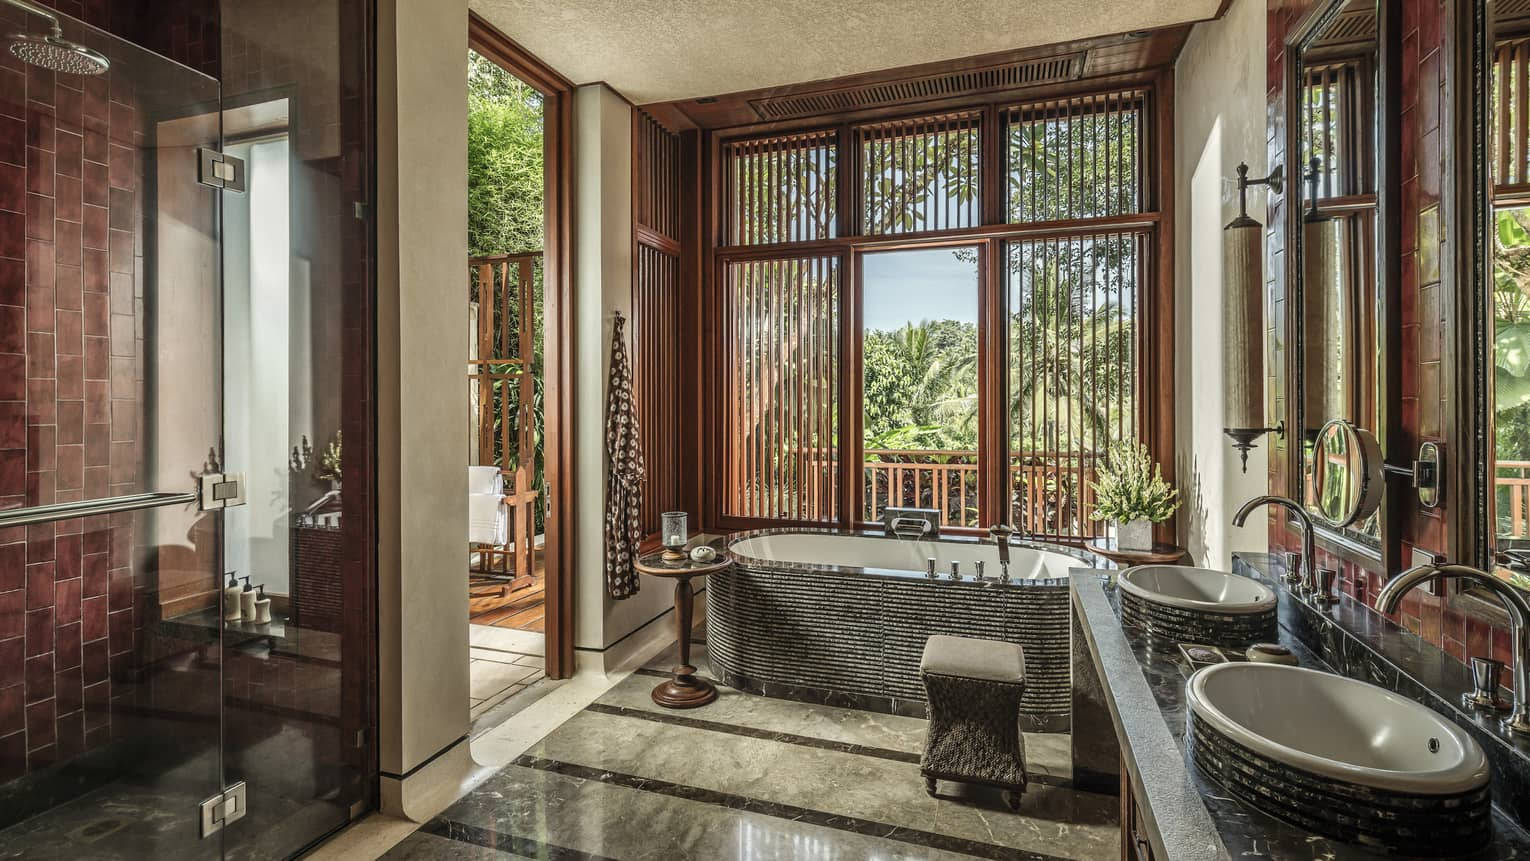 A sunlit bathroom with a tub and two sinks